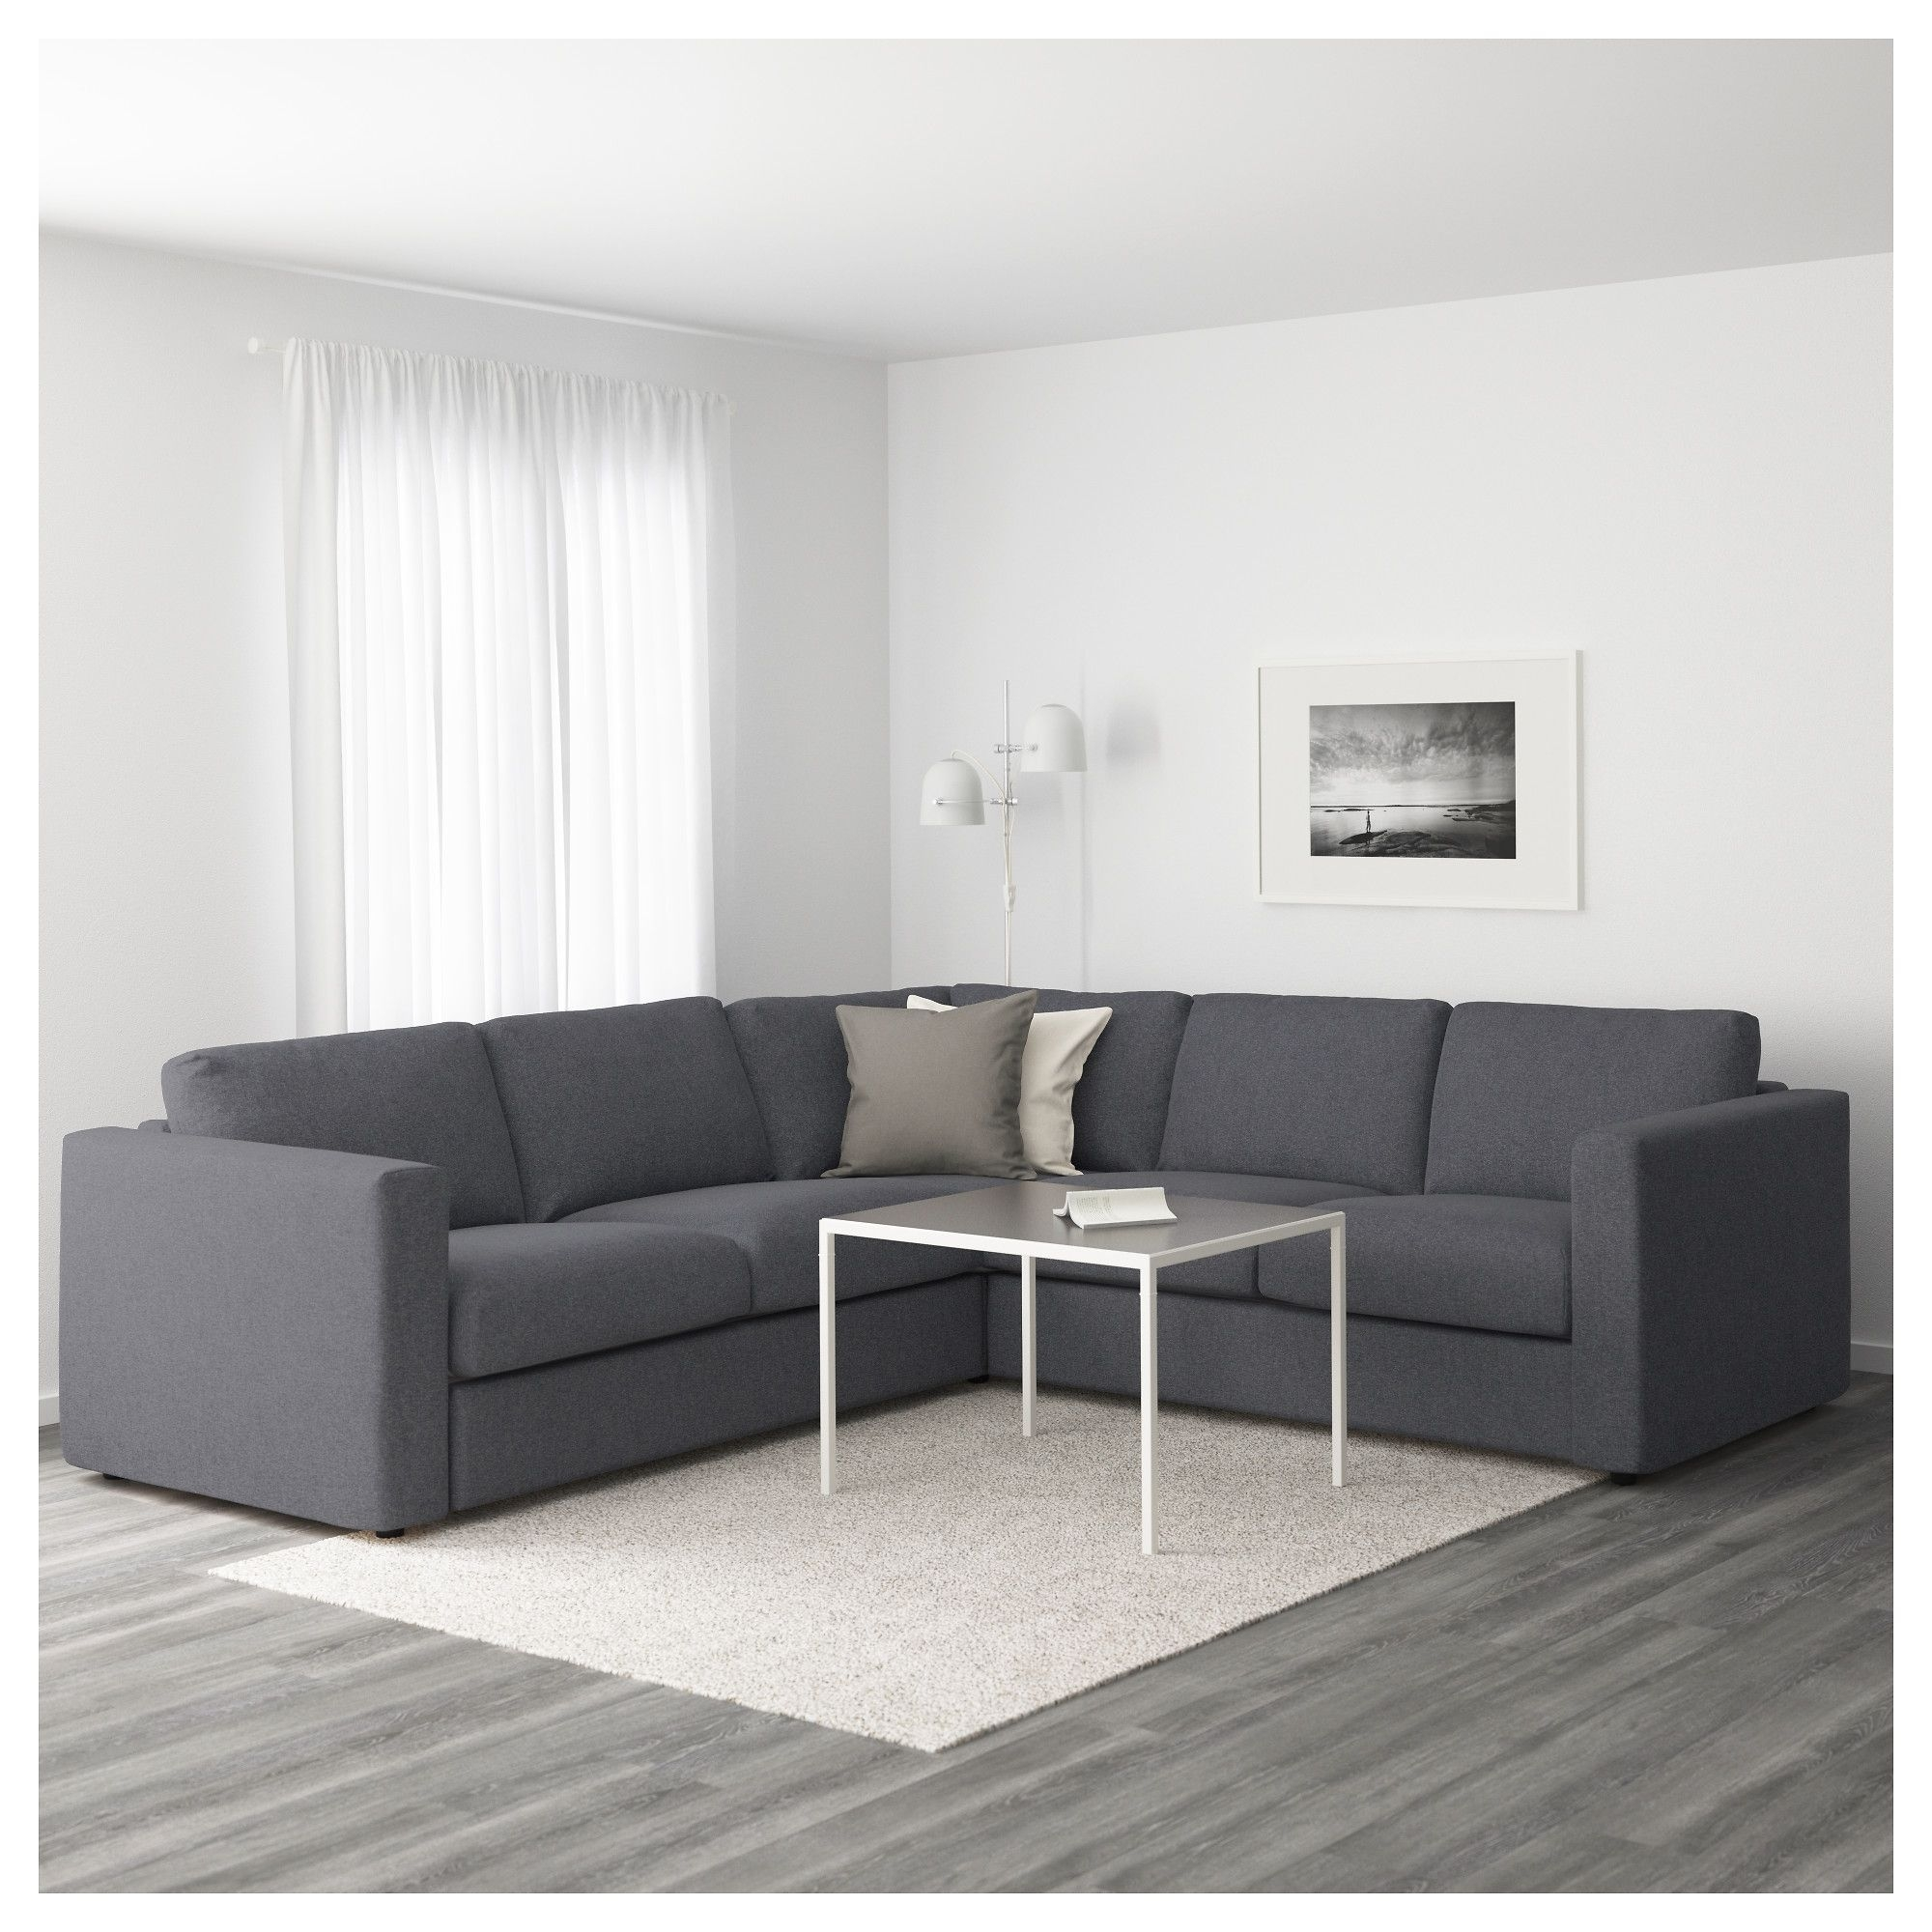 Pikby Social Media Analytics & Statistics Tools Throughout Marius Dark Grey 3 Piece Sectionals (View 10 of 25)